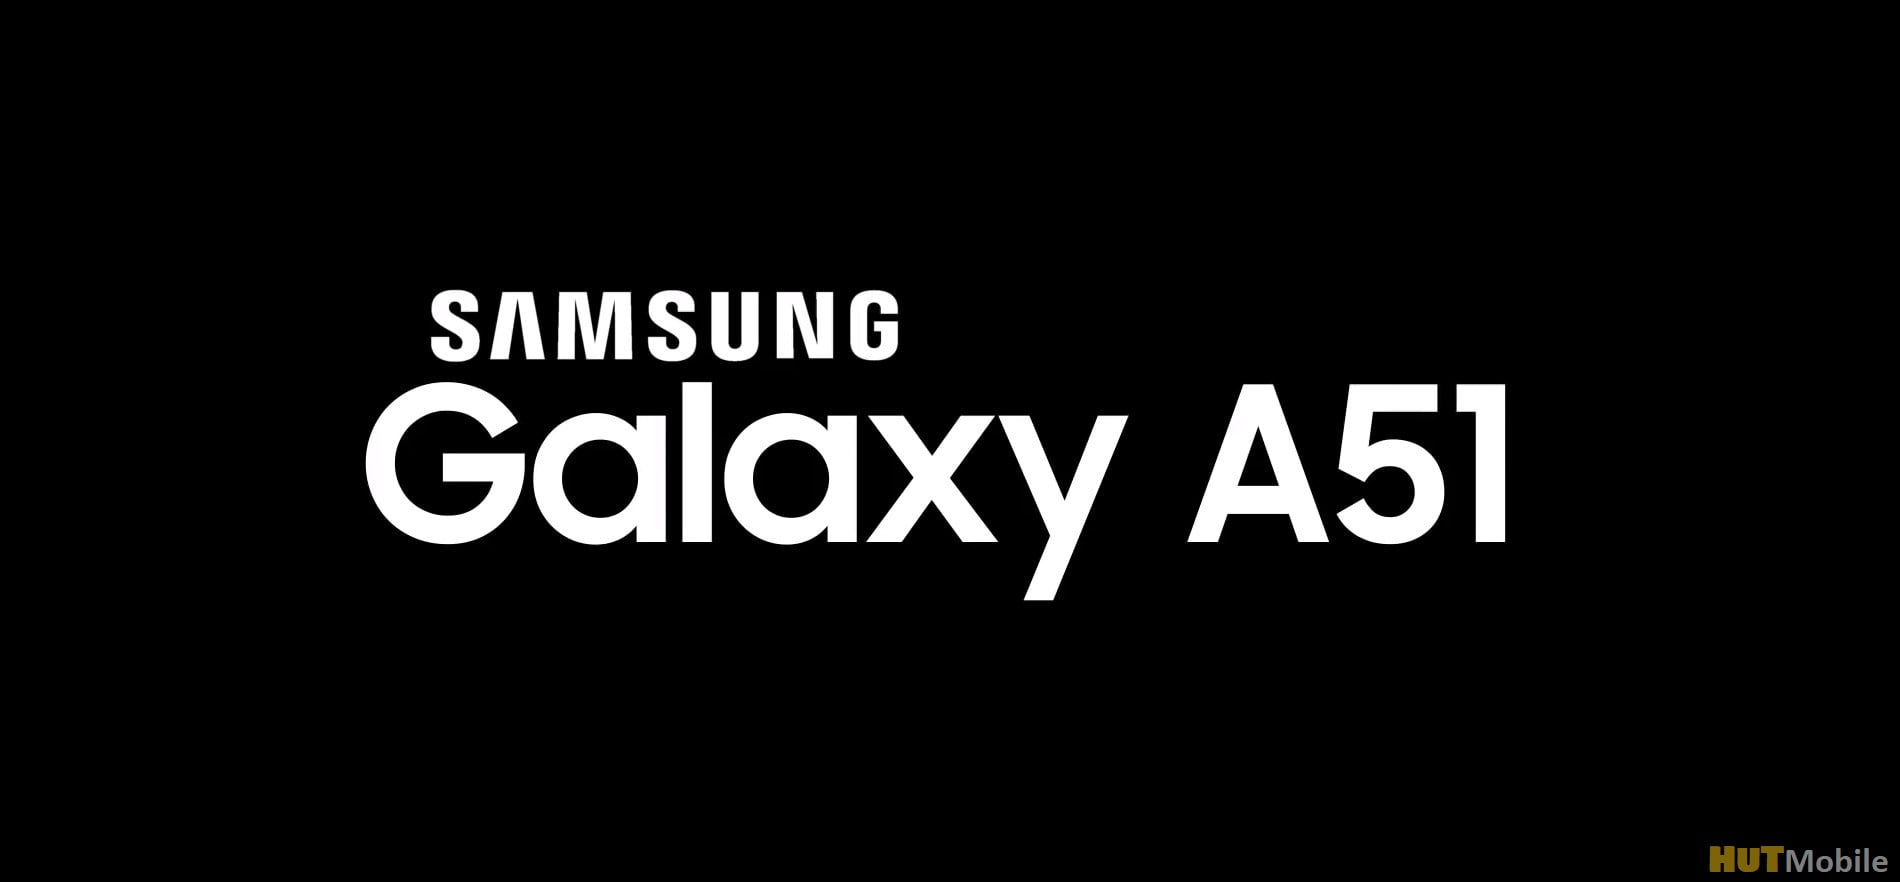 Samsung Galaxy A51 Price in Pakistan And Specifications